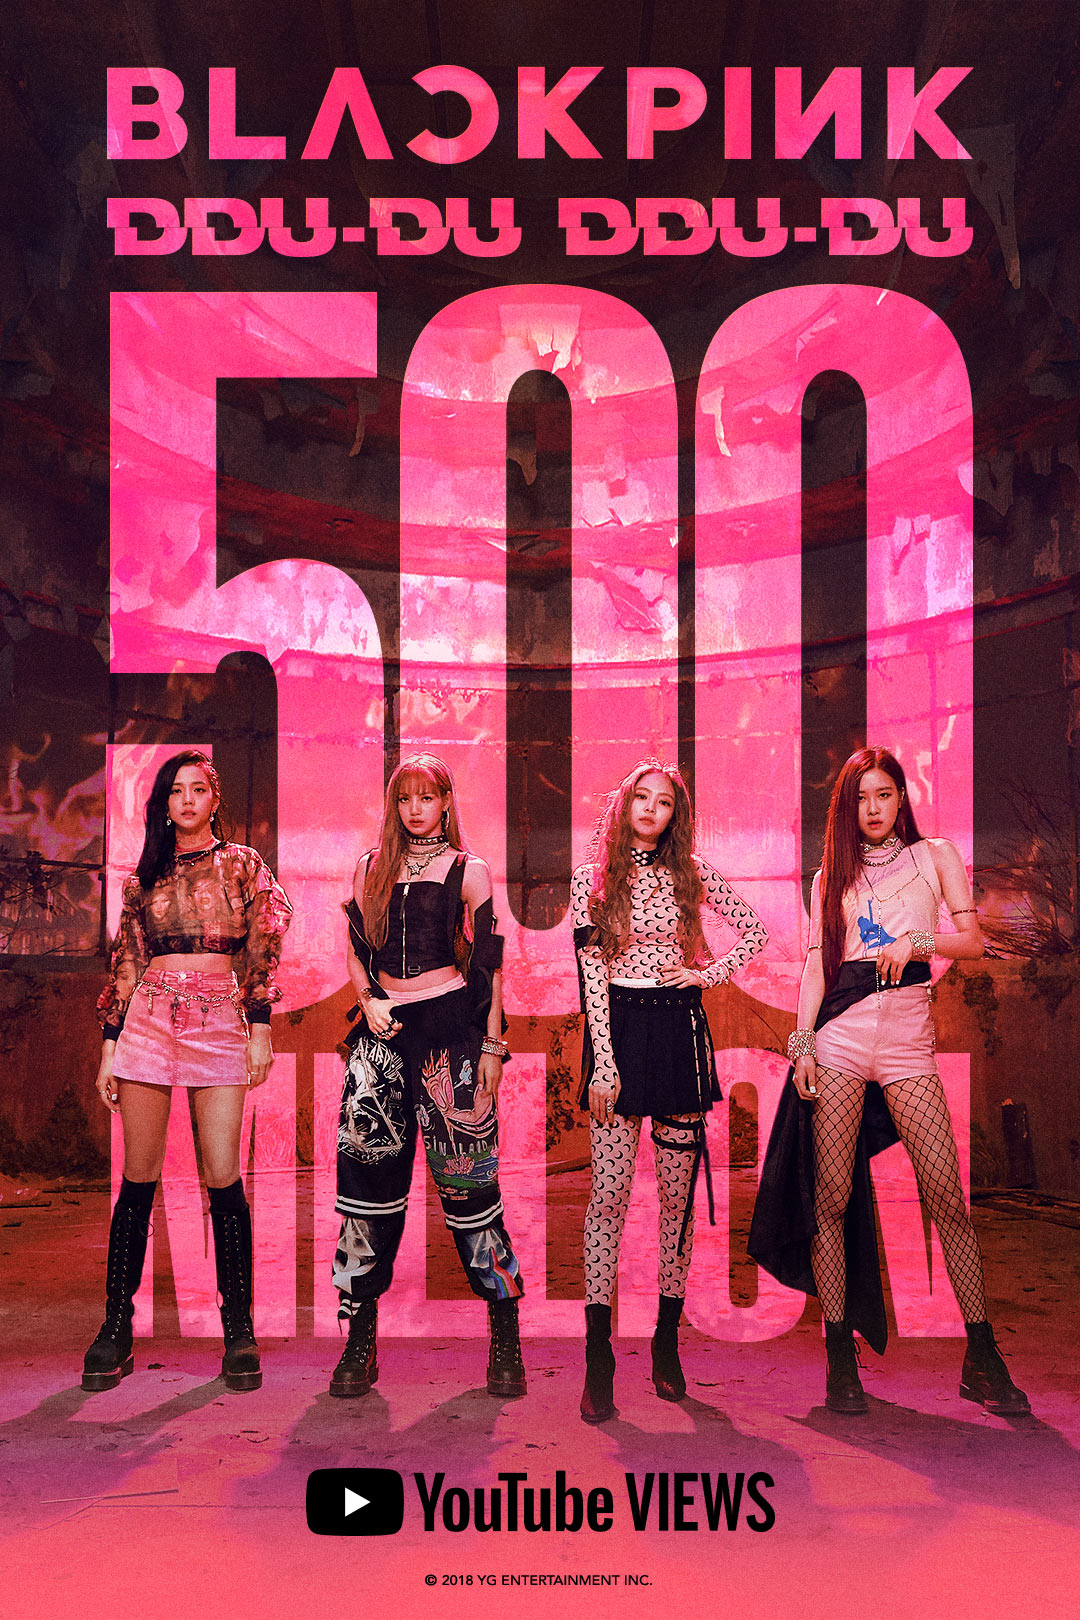 181125 BLACKPINK - 'DDU-DU DDU-DU' MV HITS 500 MILLION VIEWS